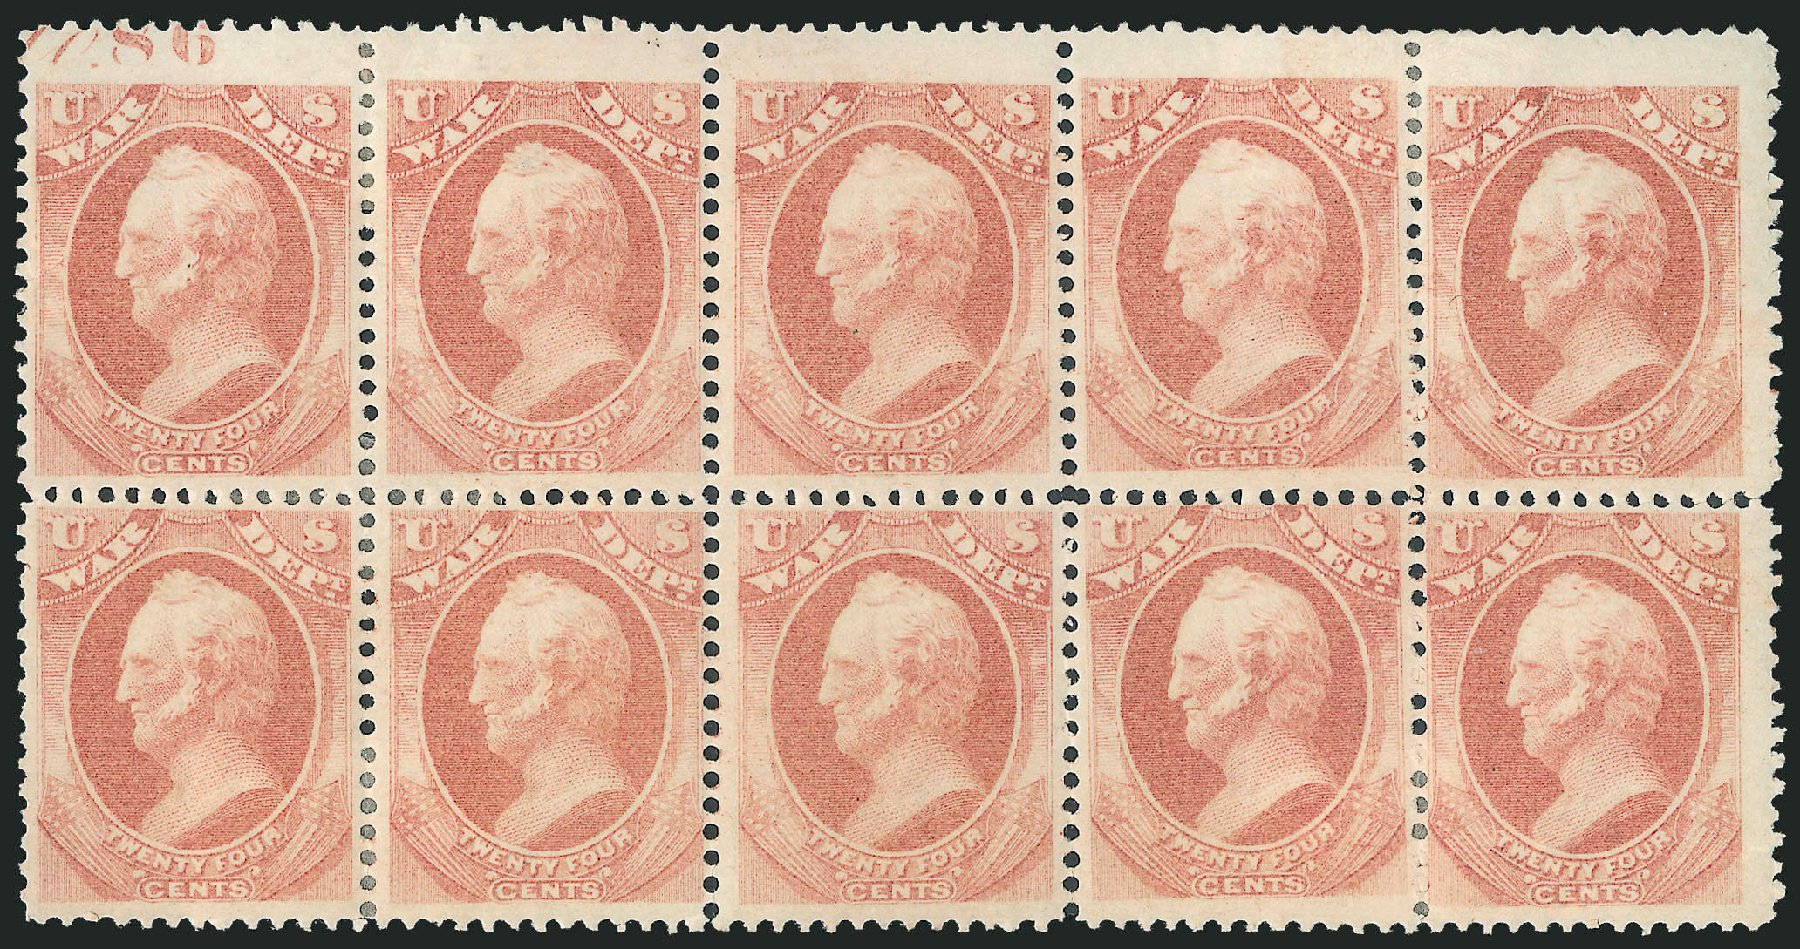 US Stamp Values Scott Catalogue O91: 24c 1873 War Official. Robert Siegel Auction Galleries, Dec 2010, Sale 1003, Lot 5475